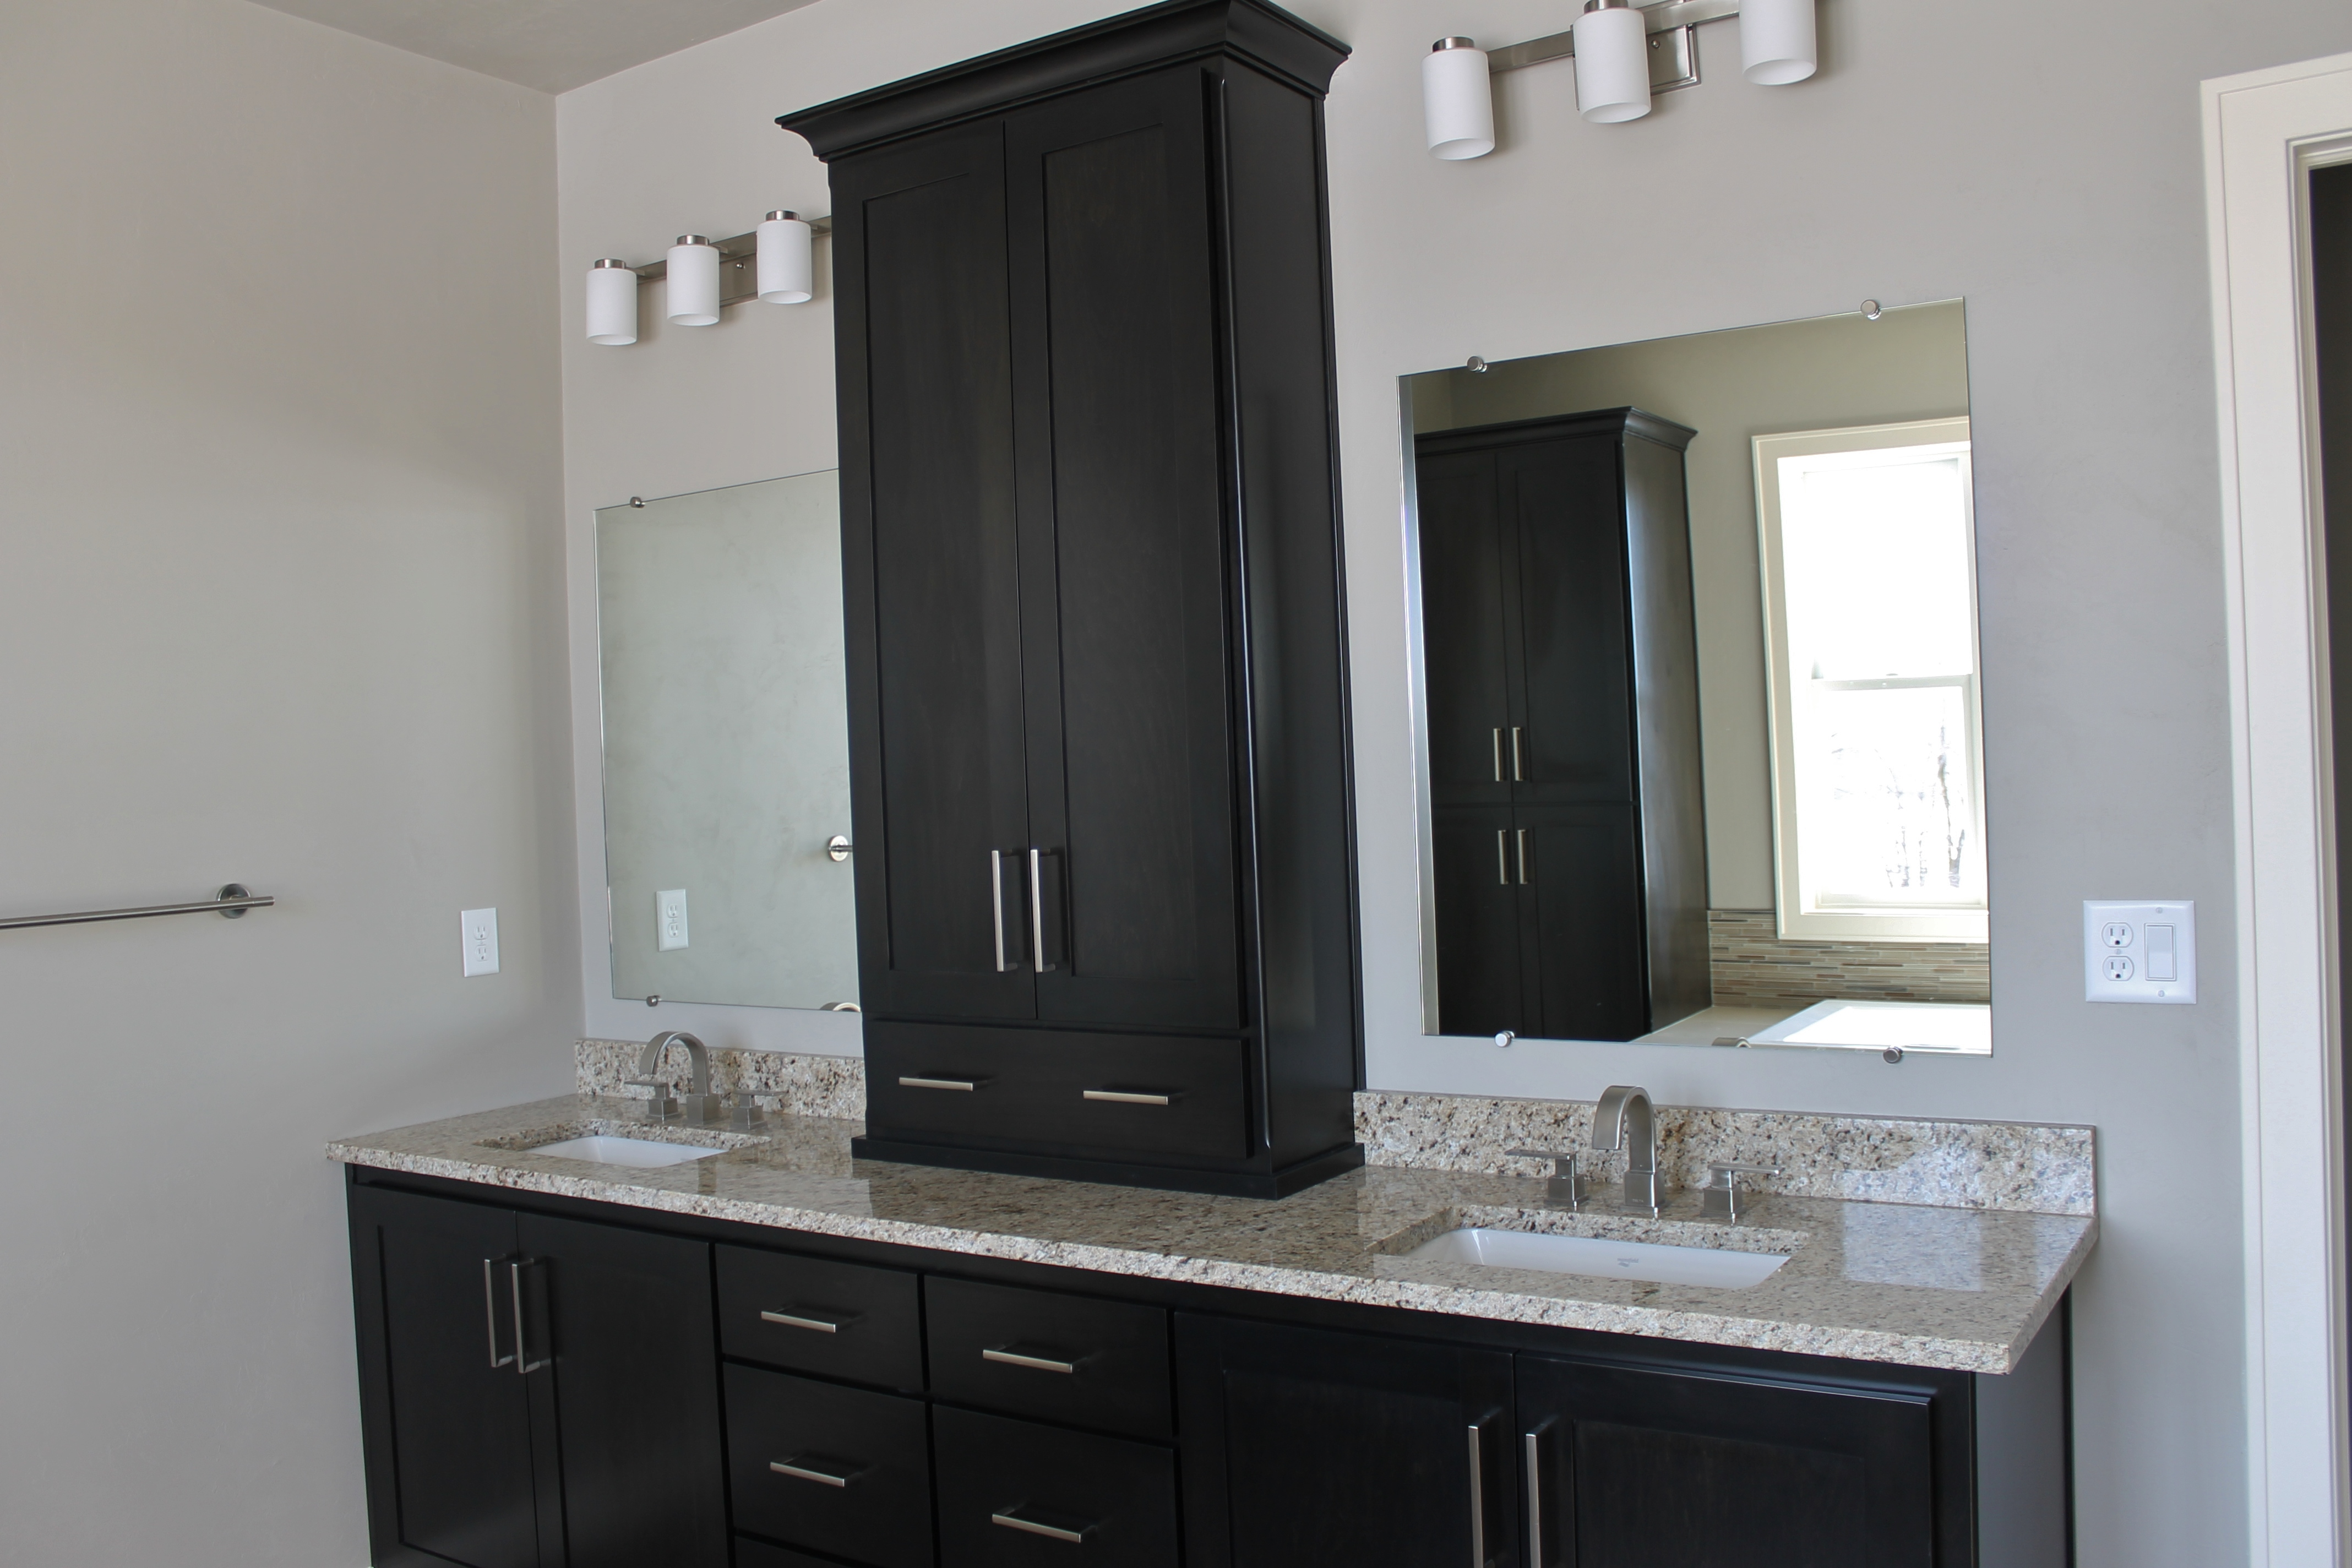 How To Choose Crown Molding For Cabinetry Katie Jane